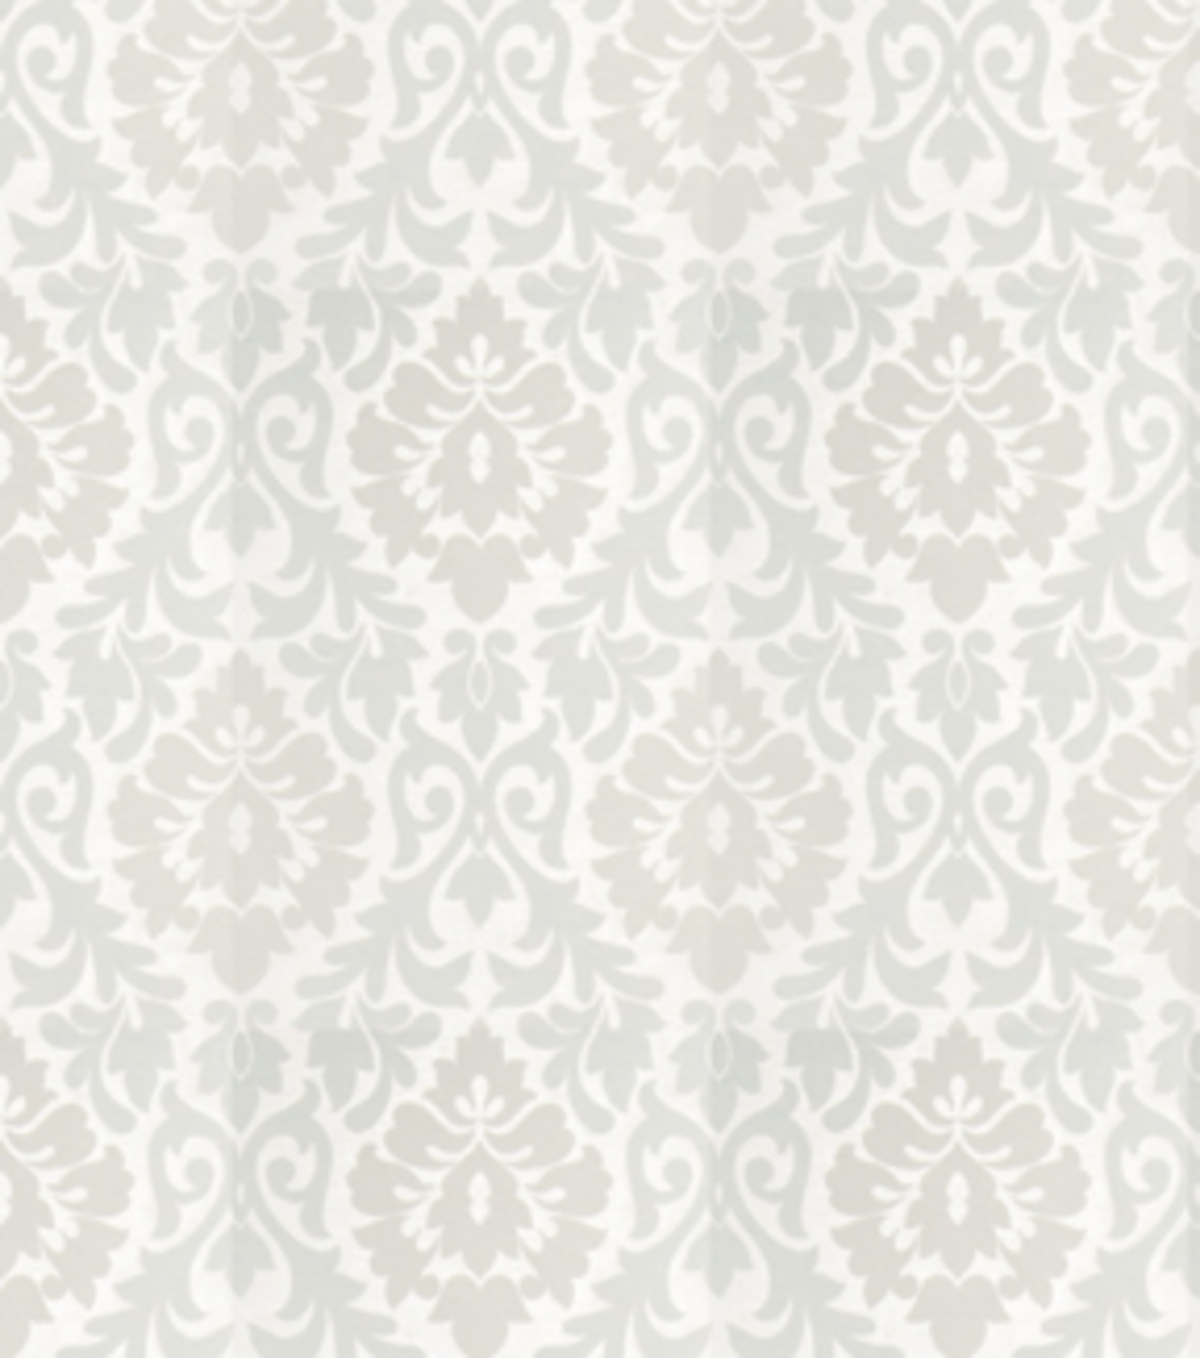 Home Decor 8\u0022x8\u0022 Fabric Swatch-Print Fabric Eaton Square Poppy Seaglass